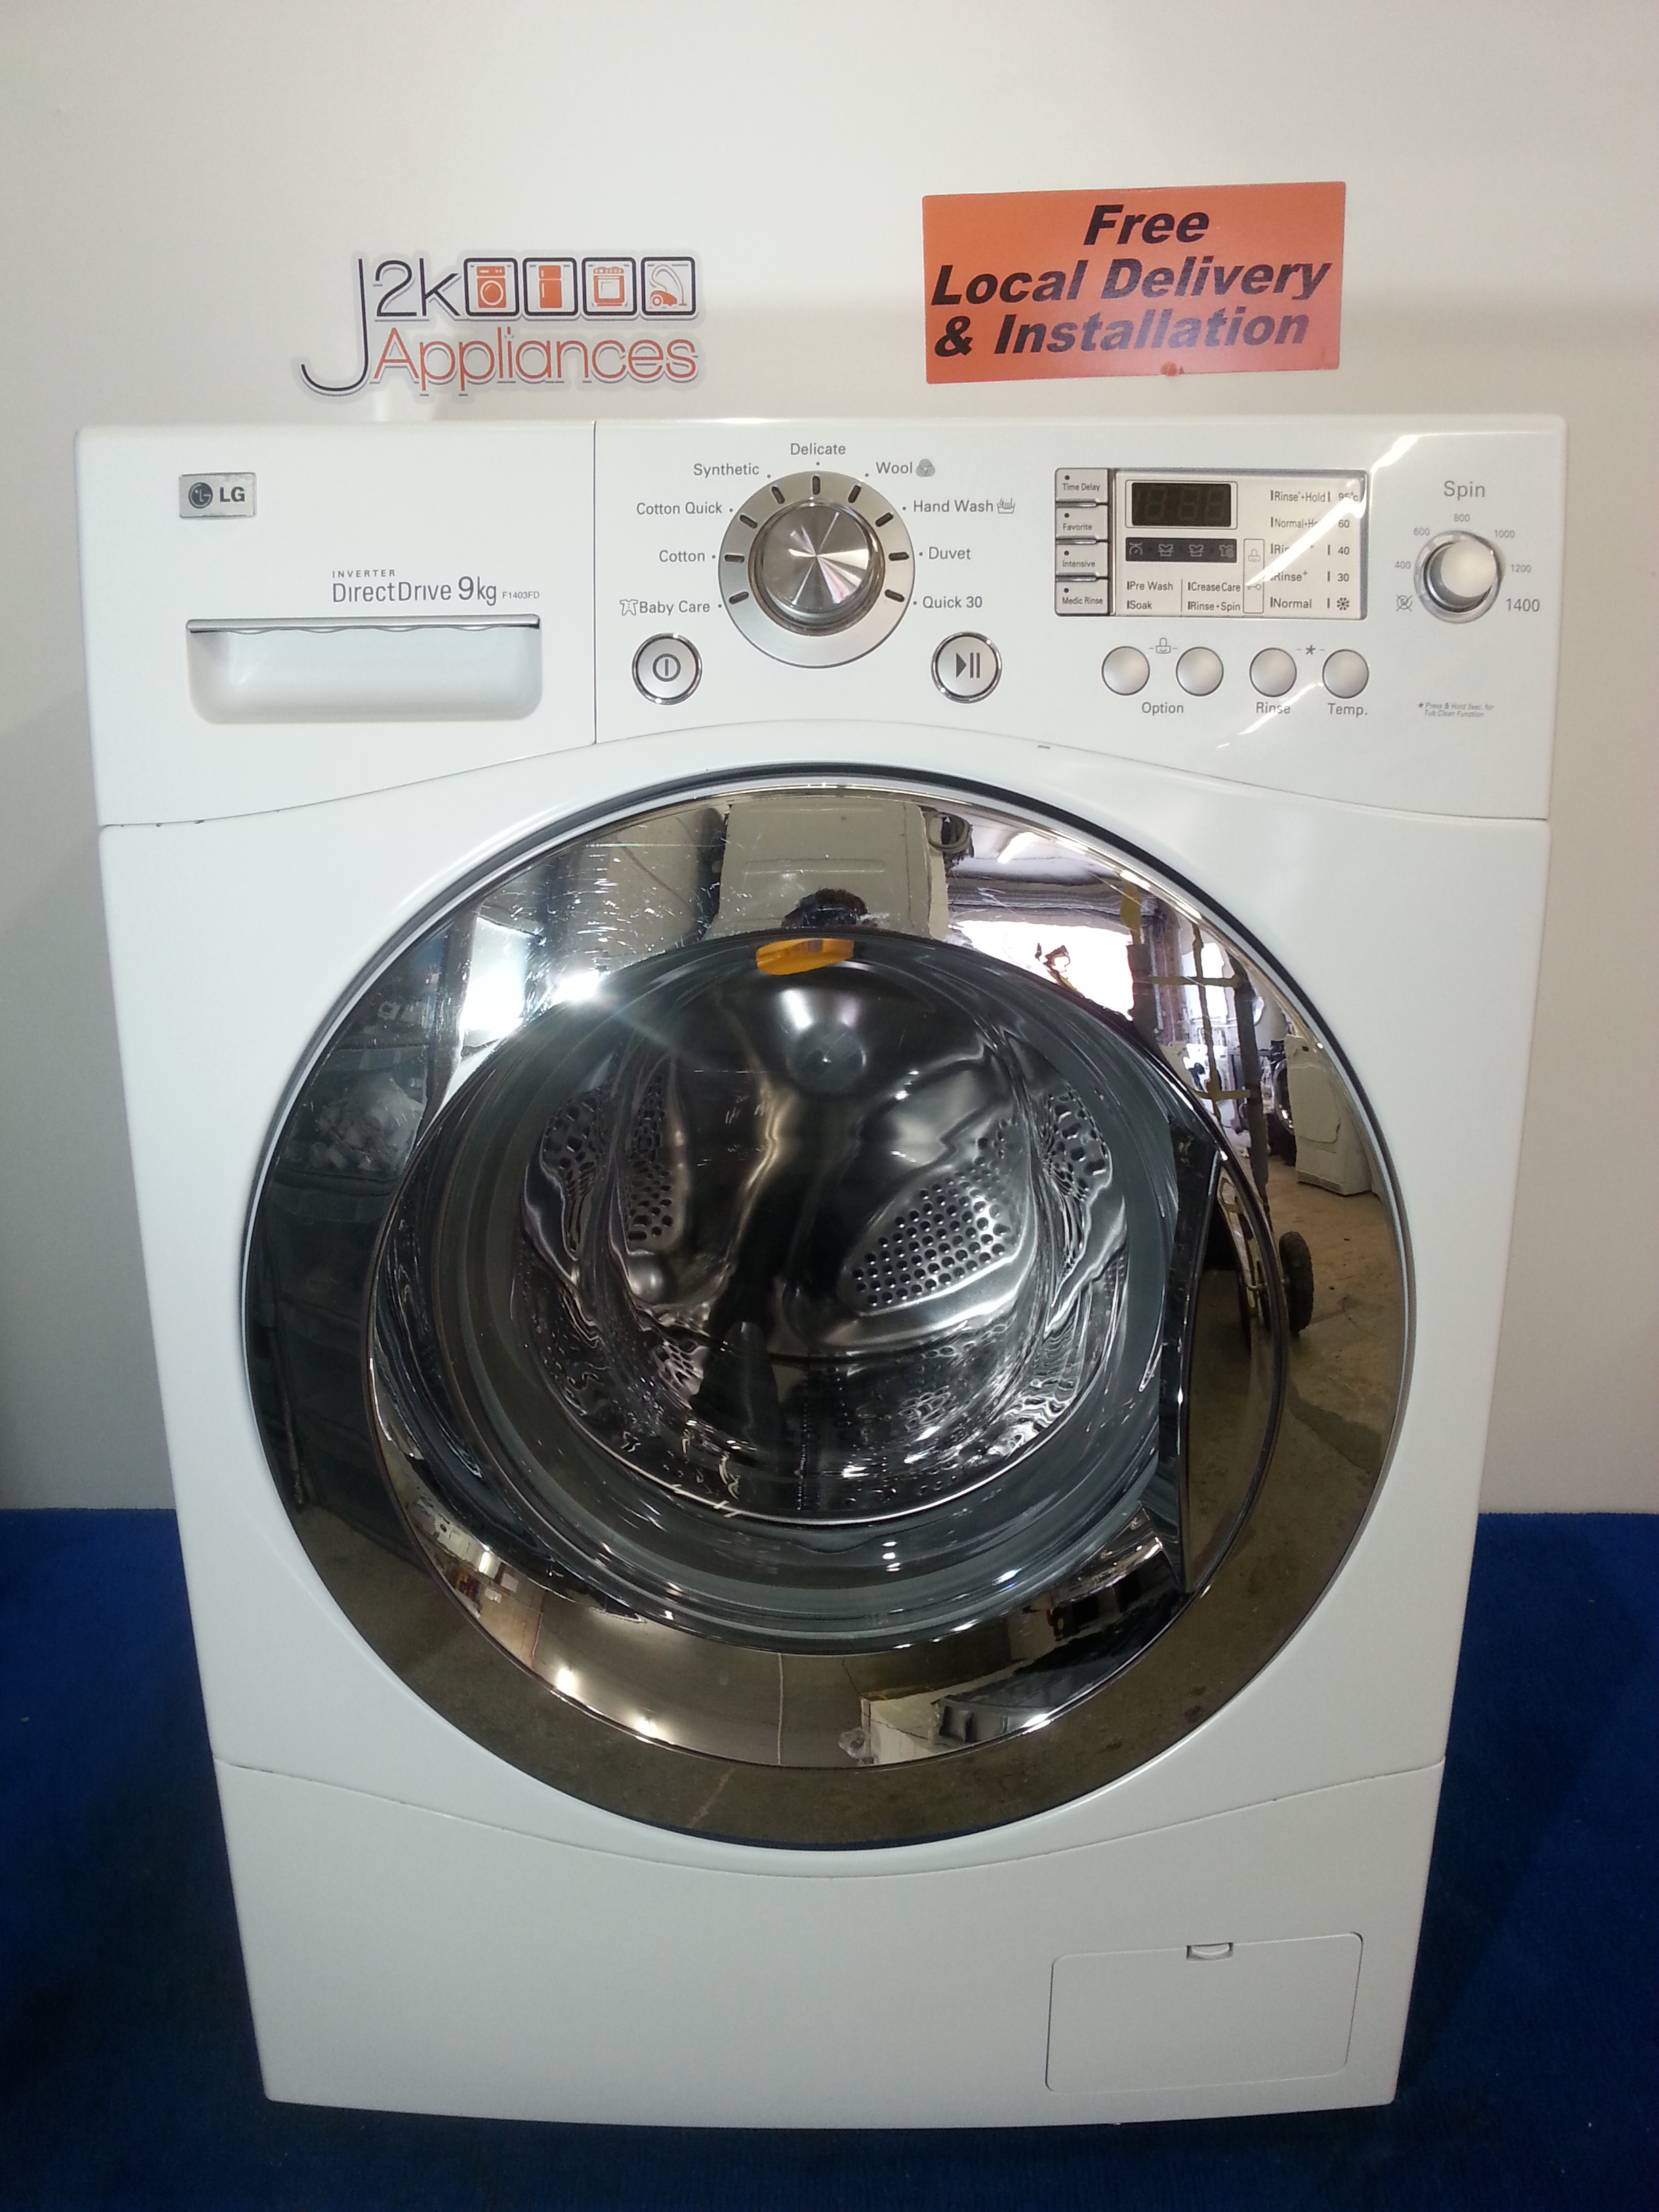 Wm088 lg direct drive 9kg 1400 spin washing machine j2k for How much is a washing machine motor